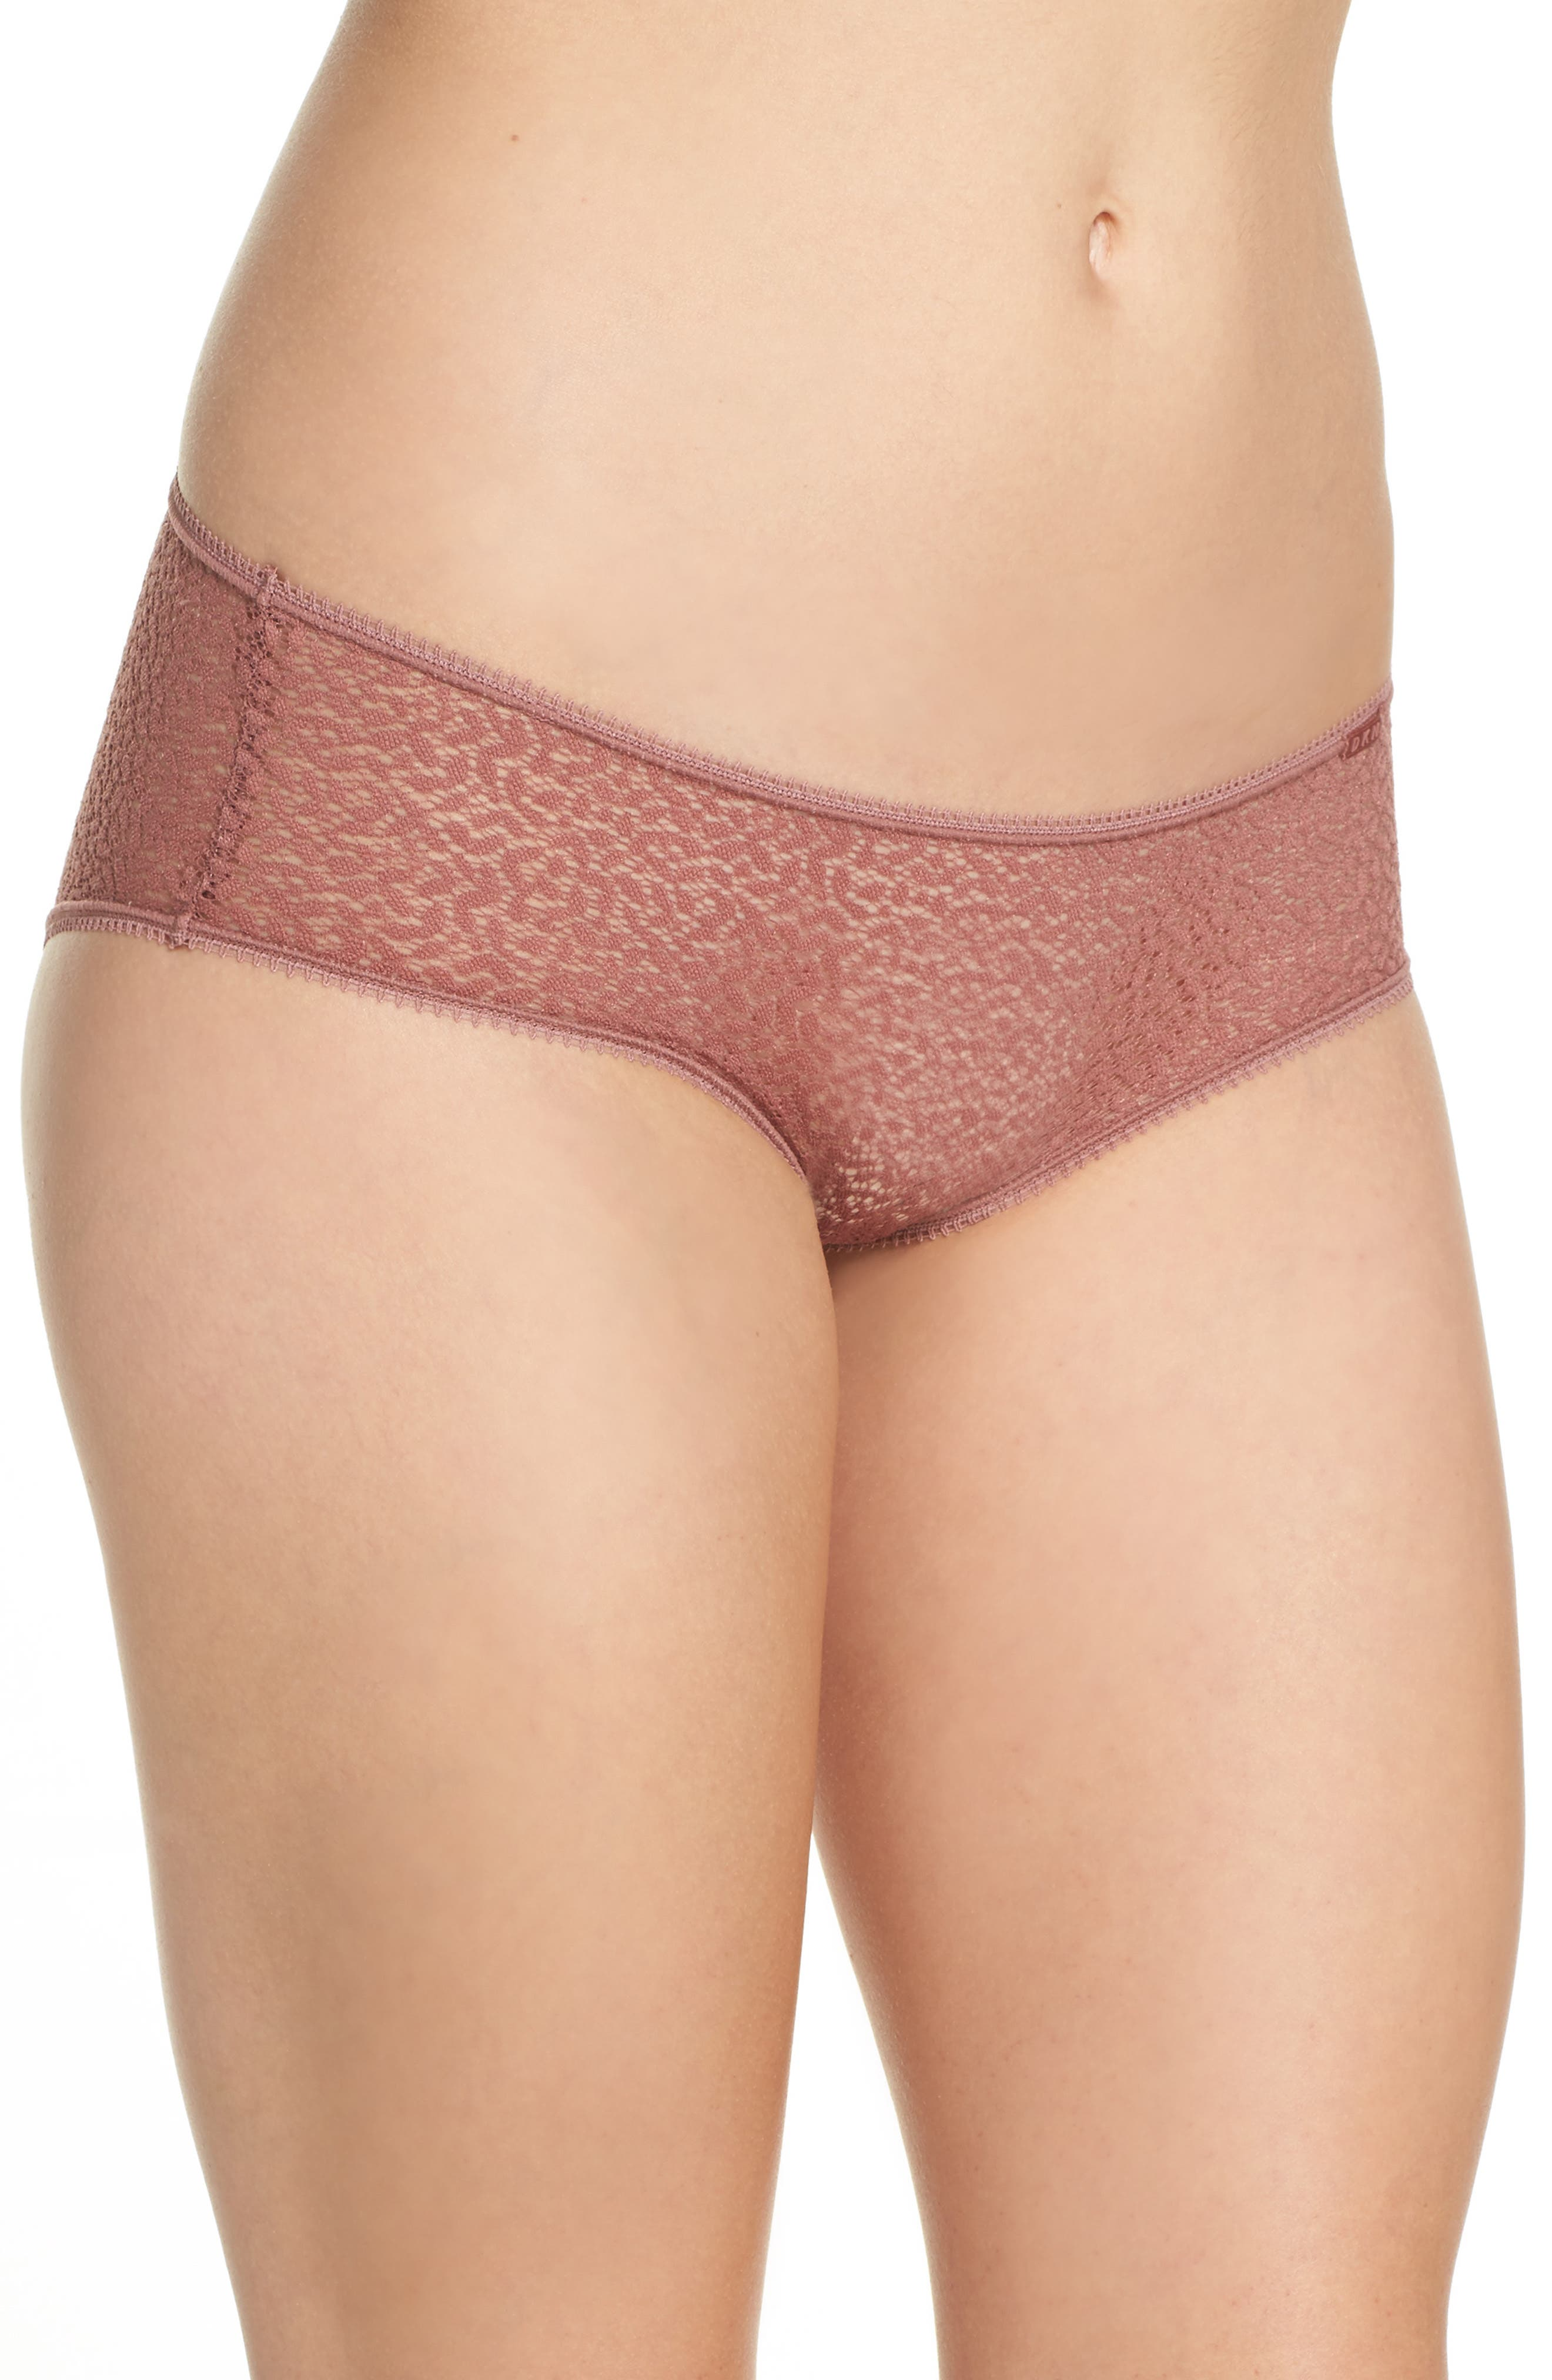 Modern Lace Hipster Panties,                             Alternate thumbnail 3, color,                             Rosewood 7Nq